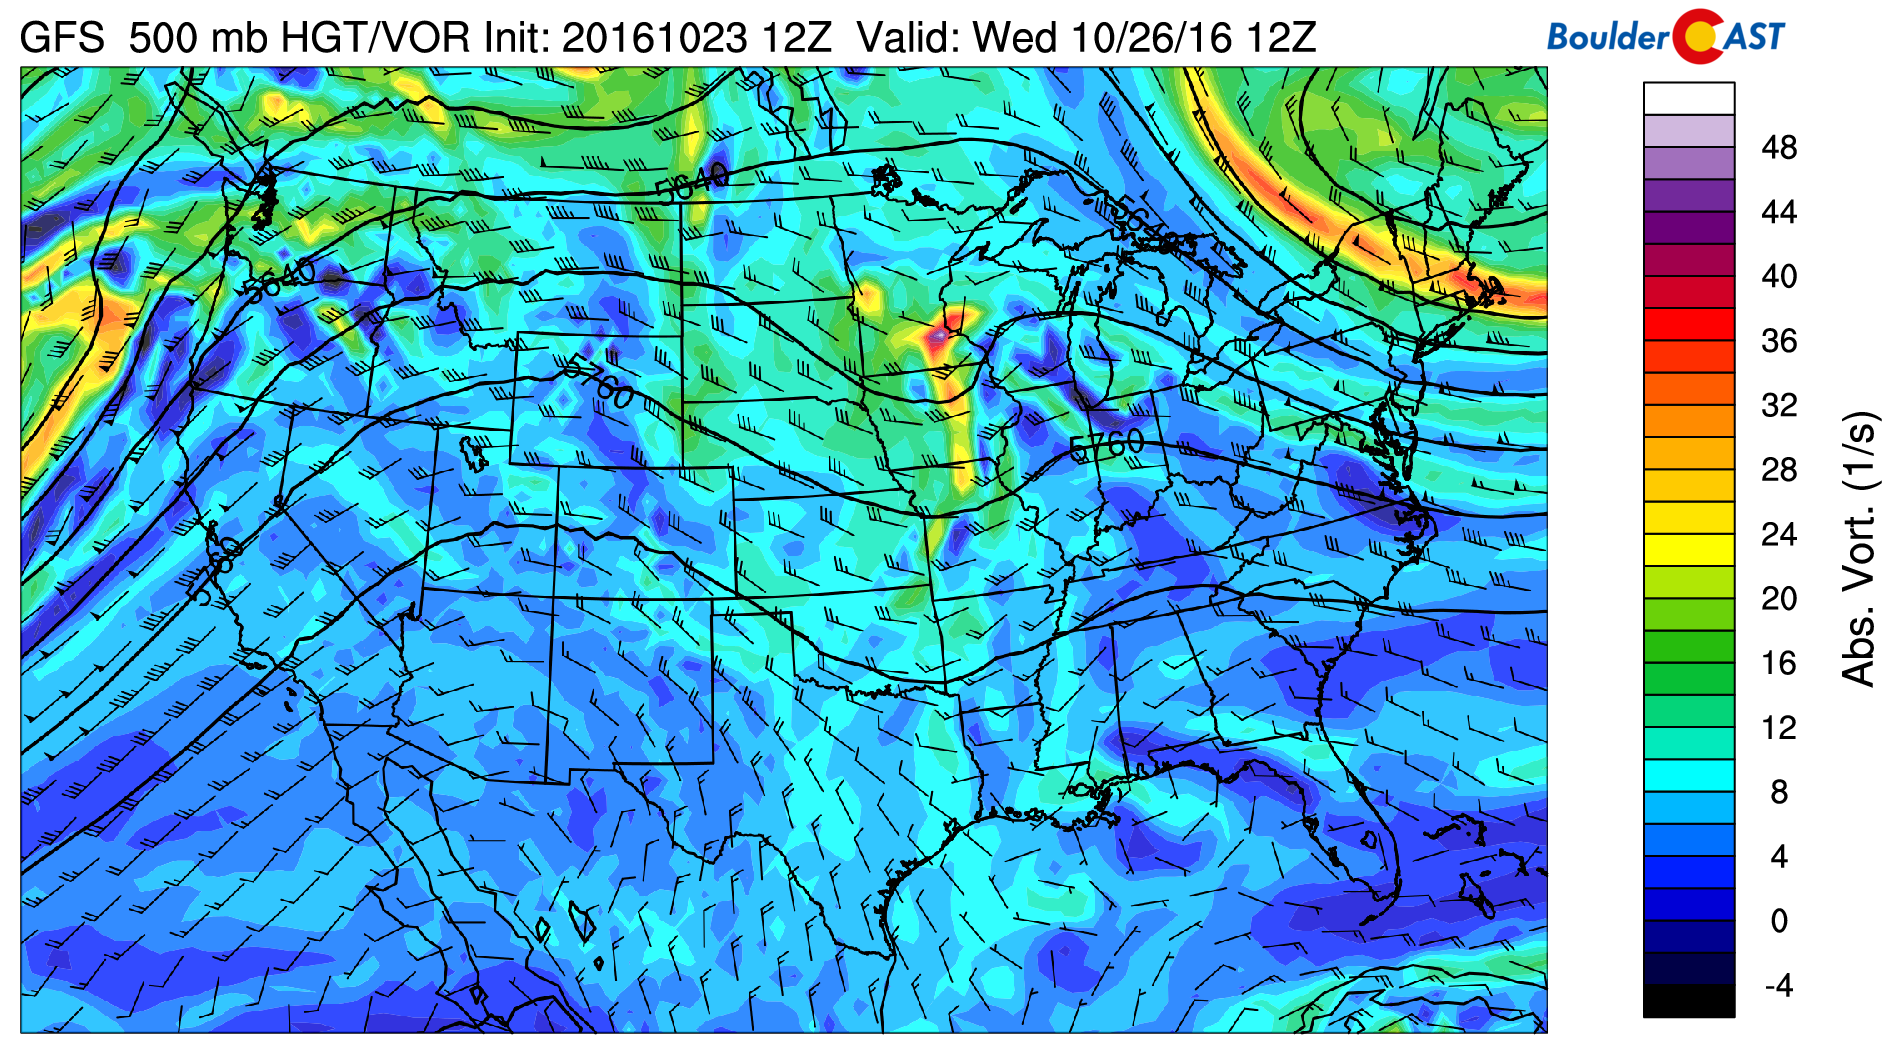 GFS 500 mb mid-level flow for Wednesday